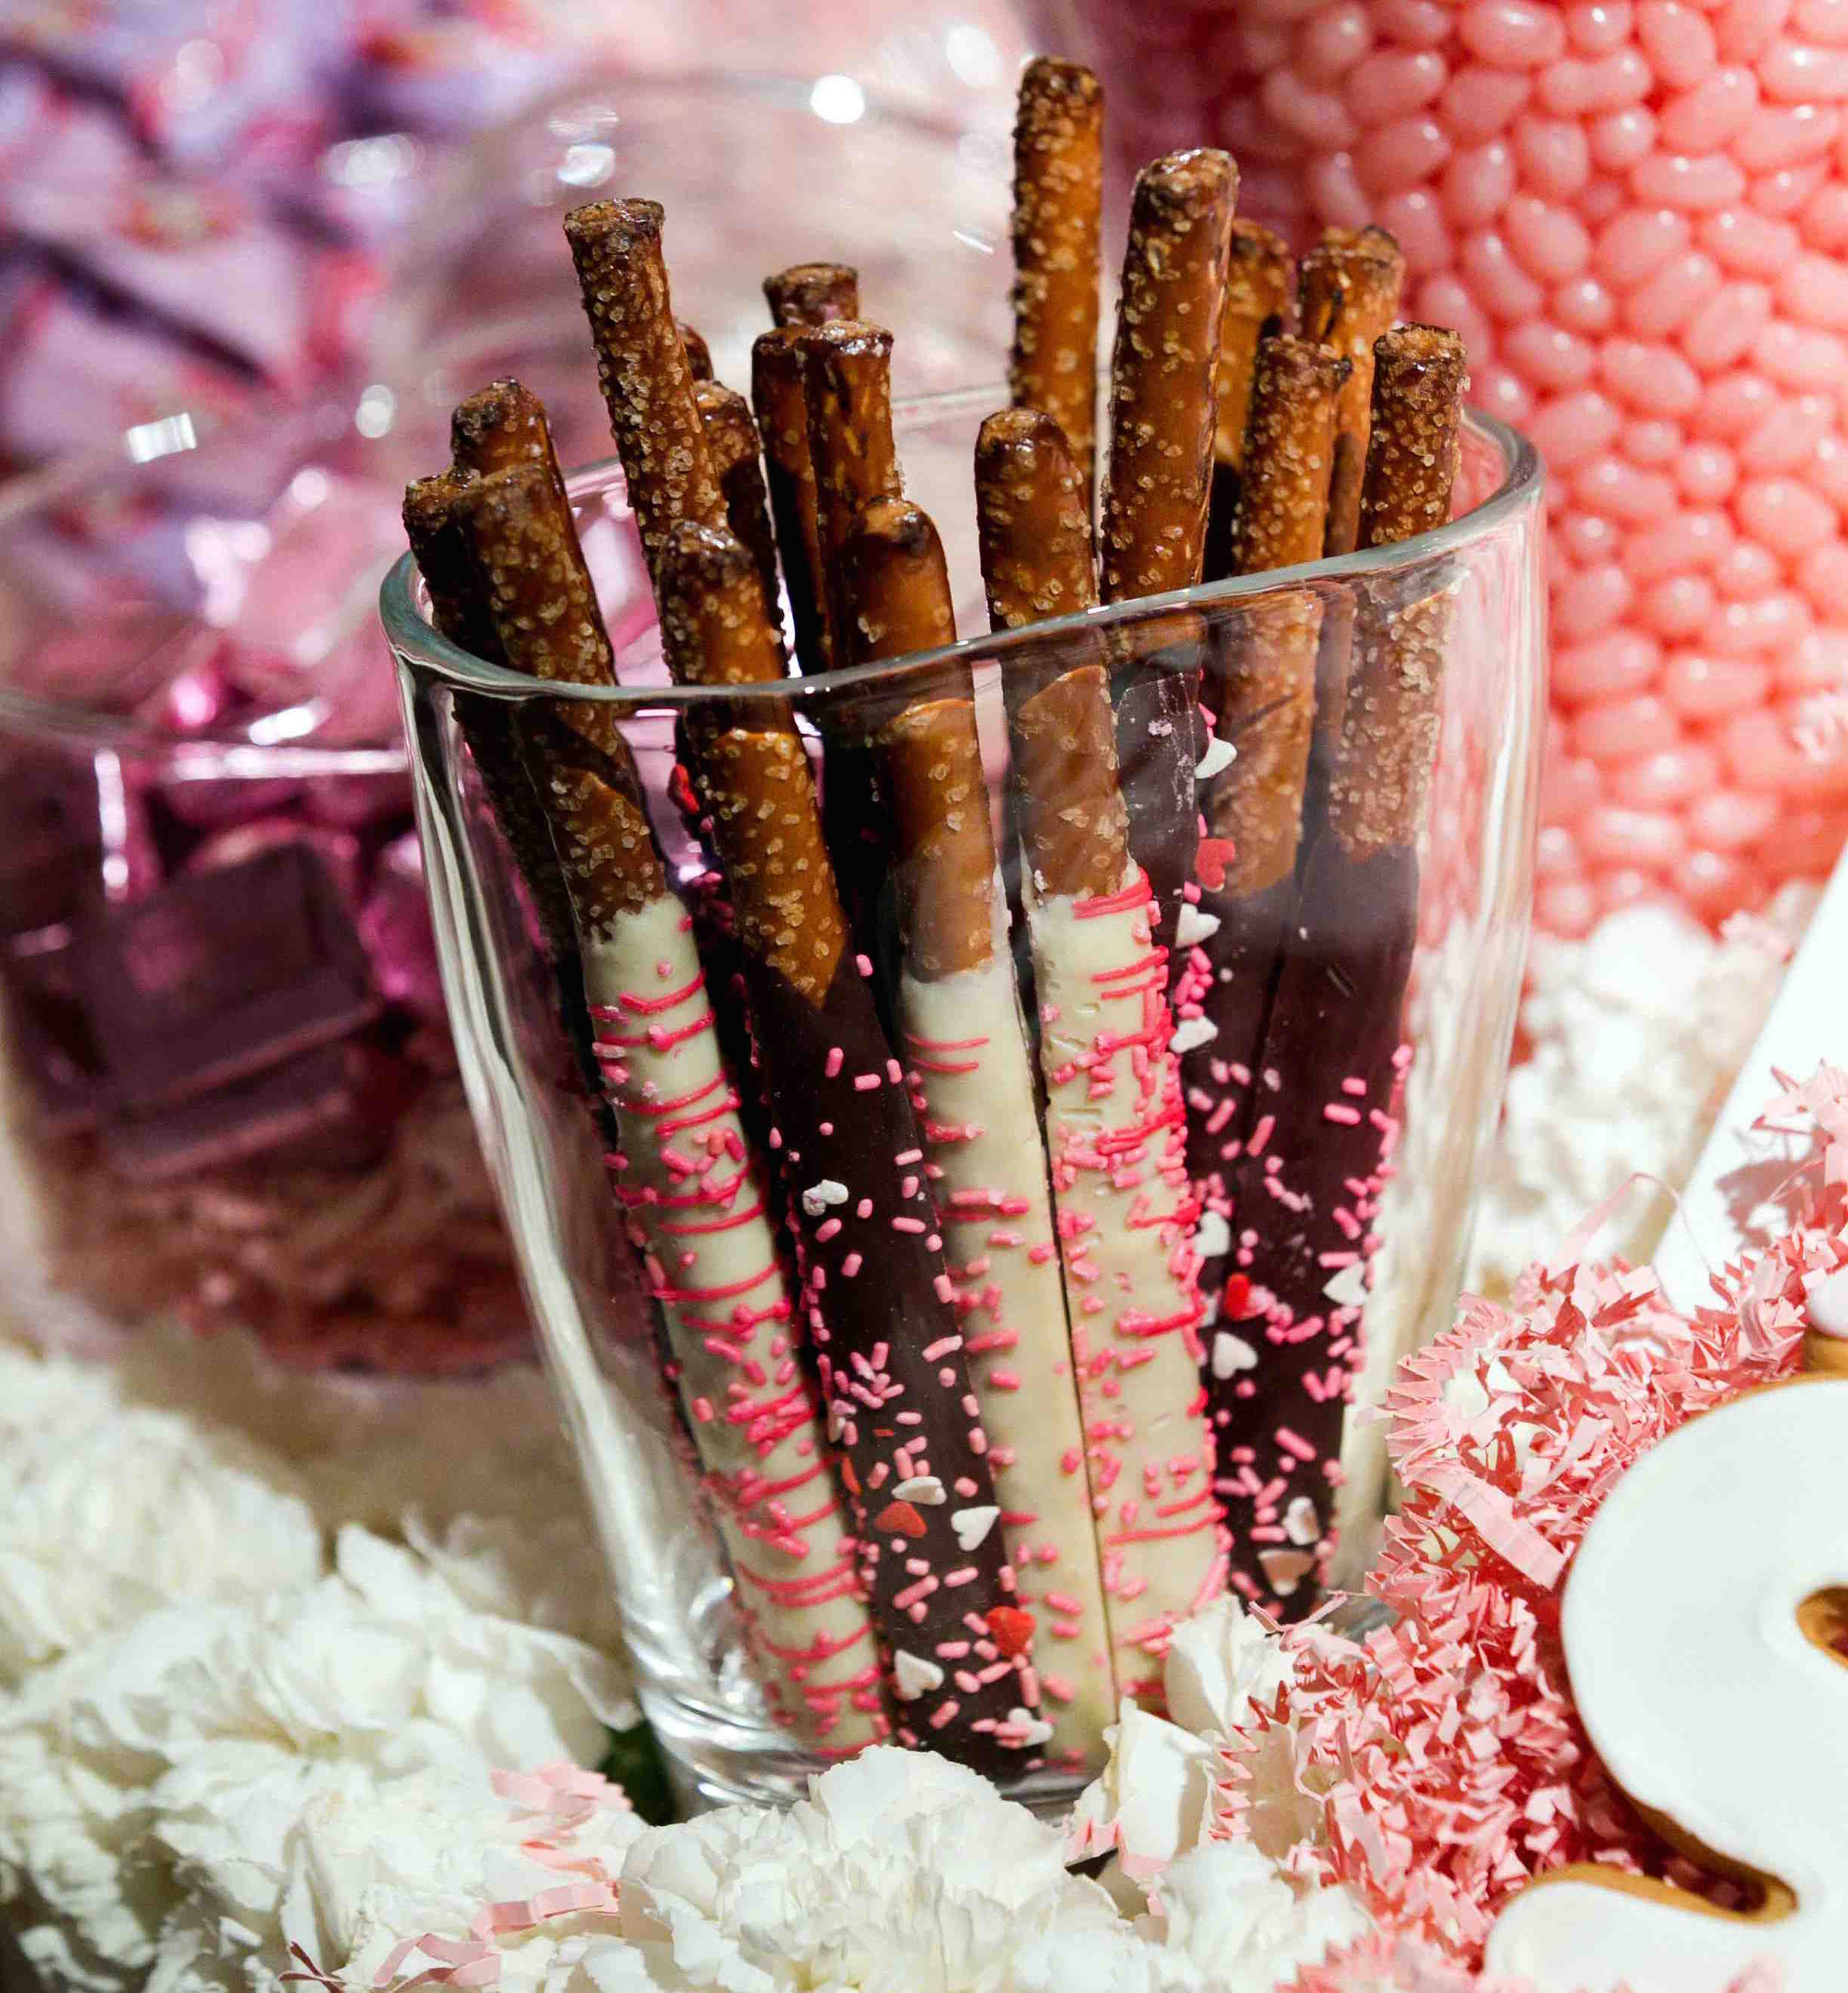 Pretzel sticks covered with white and dark chocolate with sprinkles